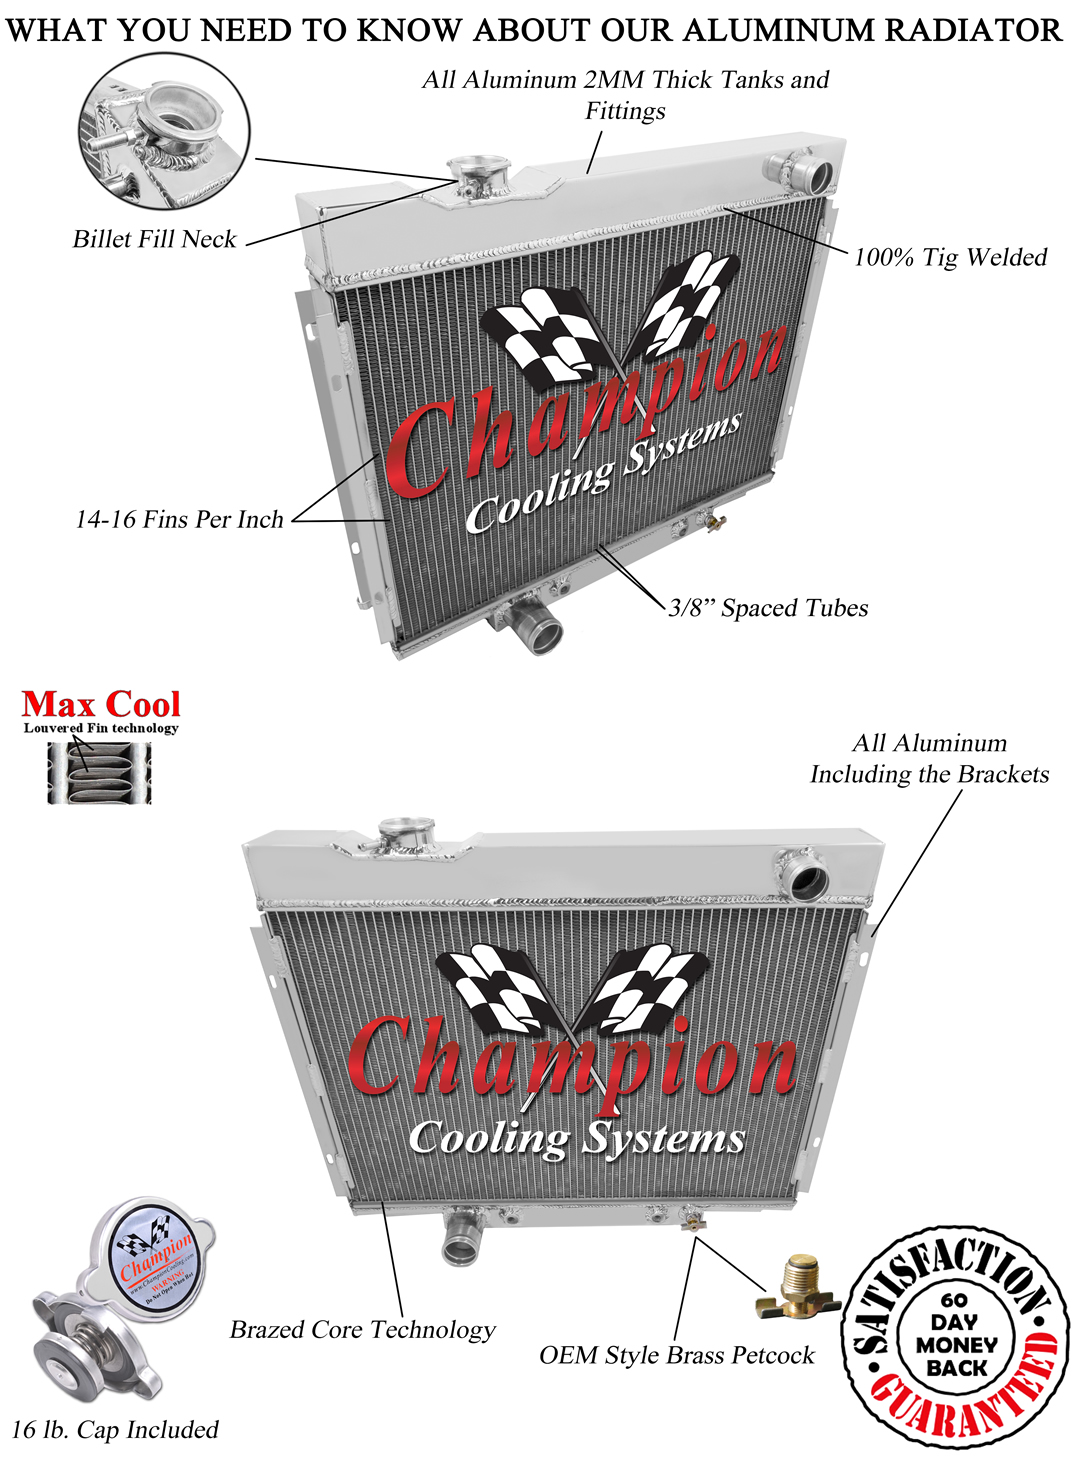 https://www.championcooling.com/photos/Photos%20White/Without%20Fans/2379/2379_%20white_diagram_1.jpg